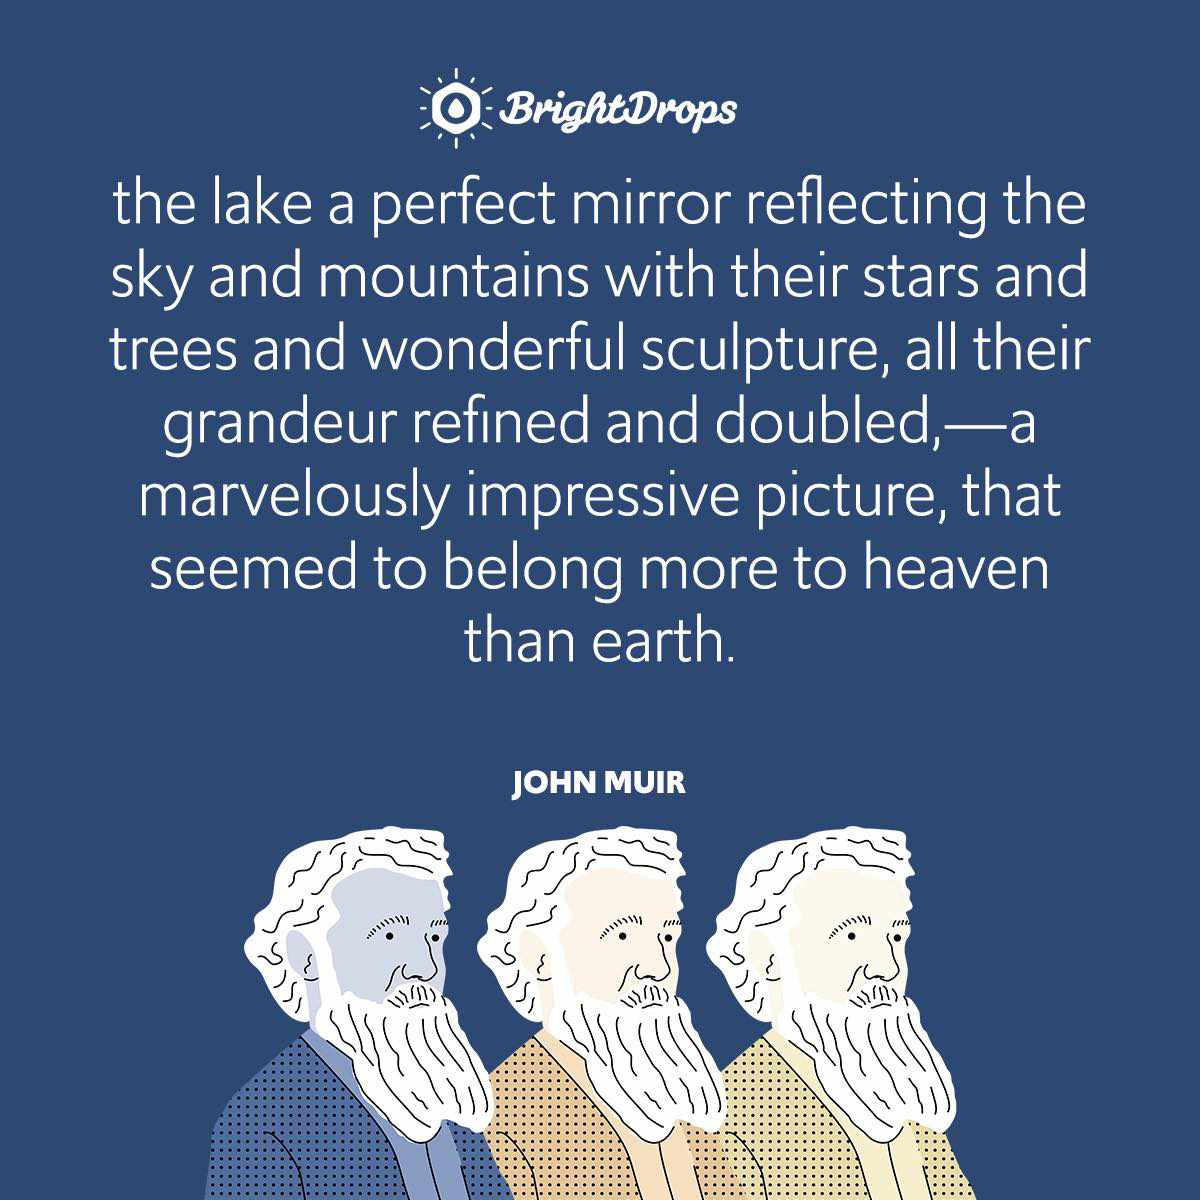 the lake a perfect mirror reflecting the sky and mountains with their stars and trees and wonderful sculpture, all their grandeur refined and doubled,—a marvelously impressive picture, that seemed to belong more to heaven than earth.